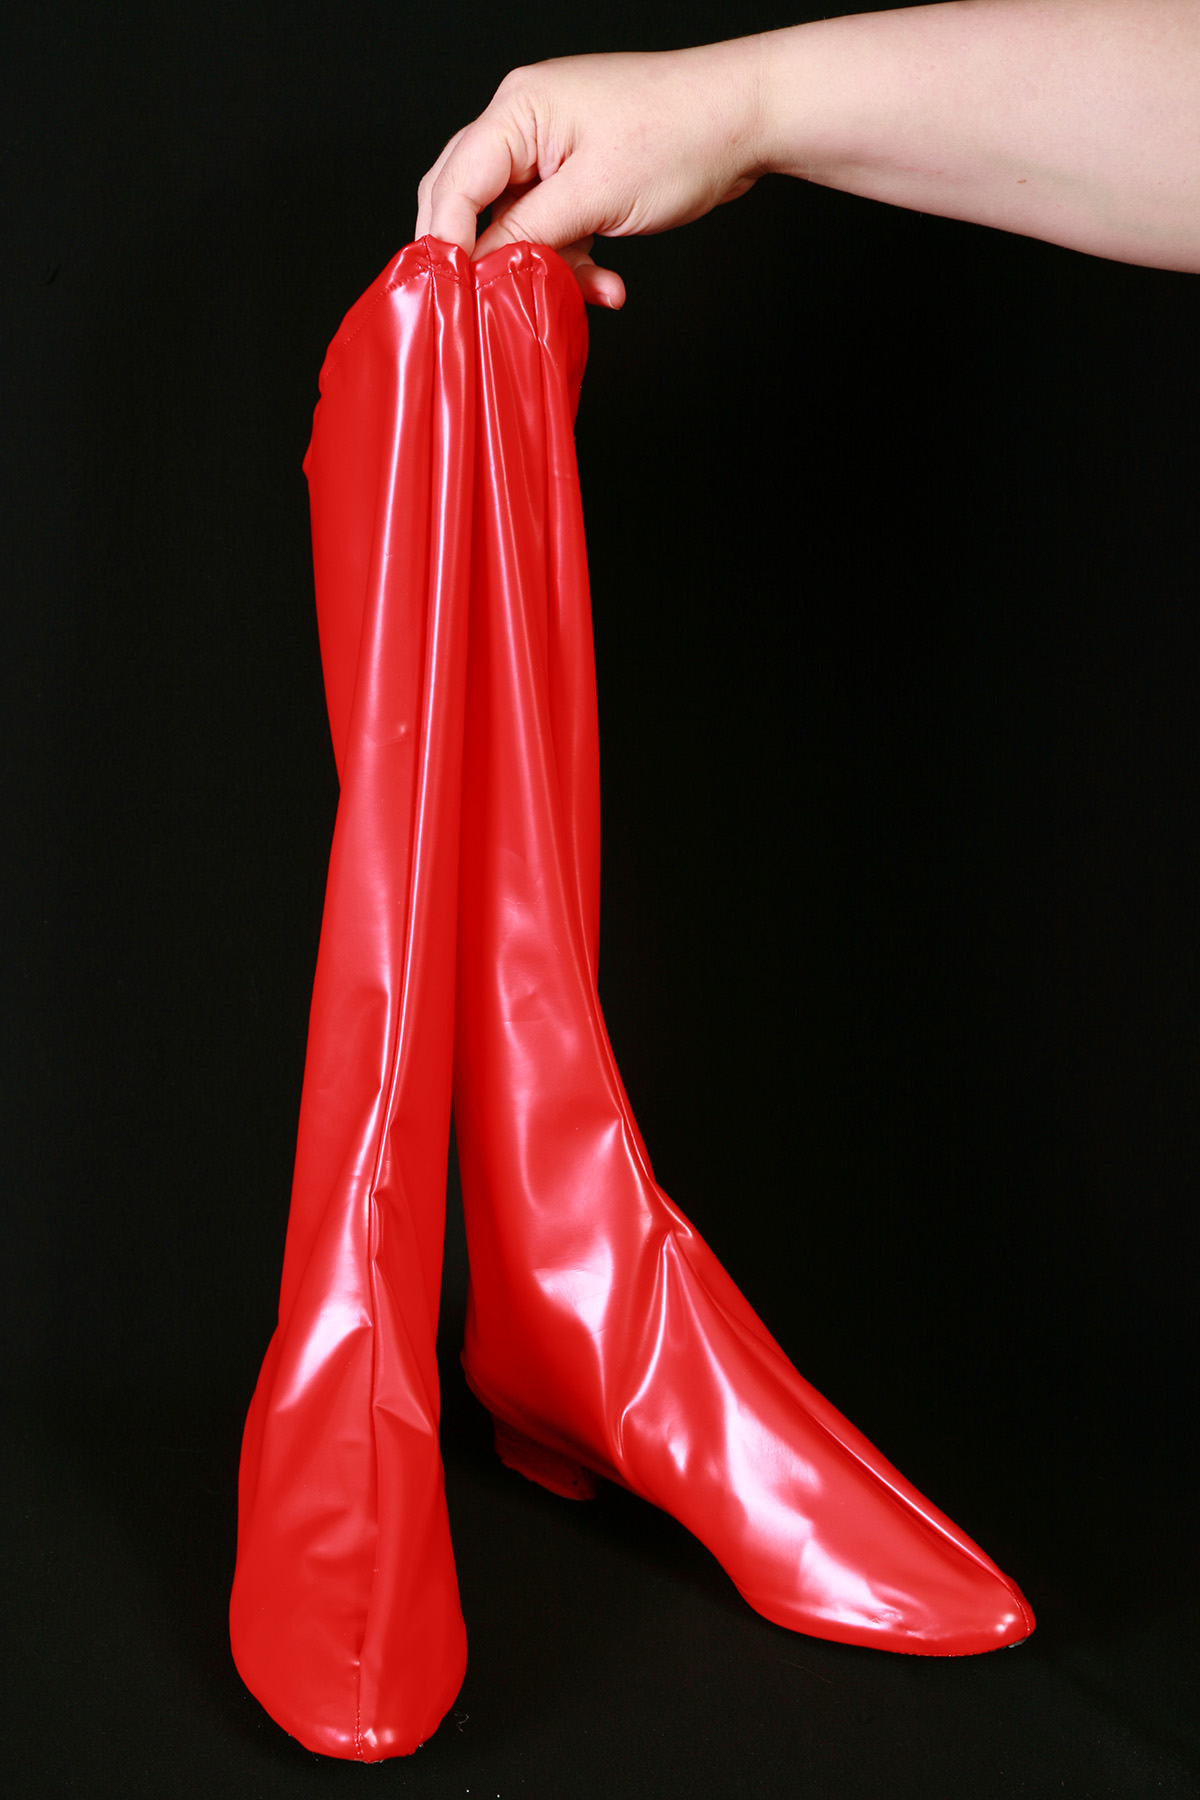 A hand holds up a shiny pair of bright red spandex boot covers.